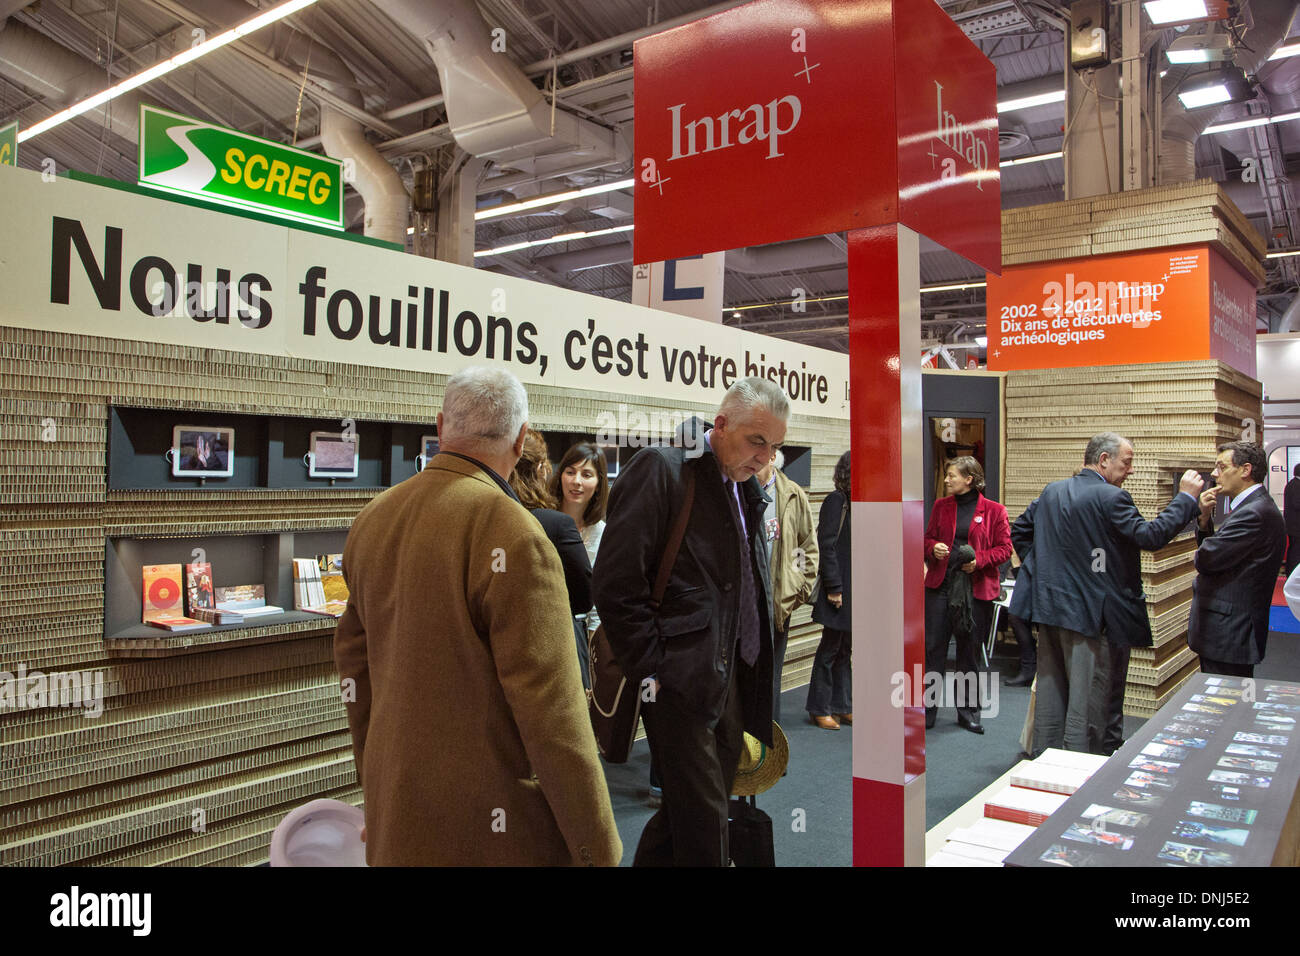 STAND FOR THE INRAP, NATIONAL INSTITUTE FOR PREVENTIVE ARCHAEOLOGICAL RESEARCH, 2012 MAYORS AND LOCAL AUTHORITIES EXPO, PORTE DE VERSAILLES, PARIS (75), FRANCE - Stock Image